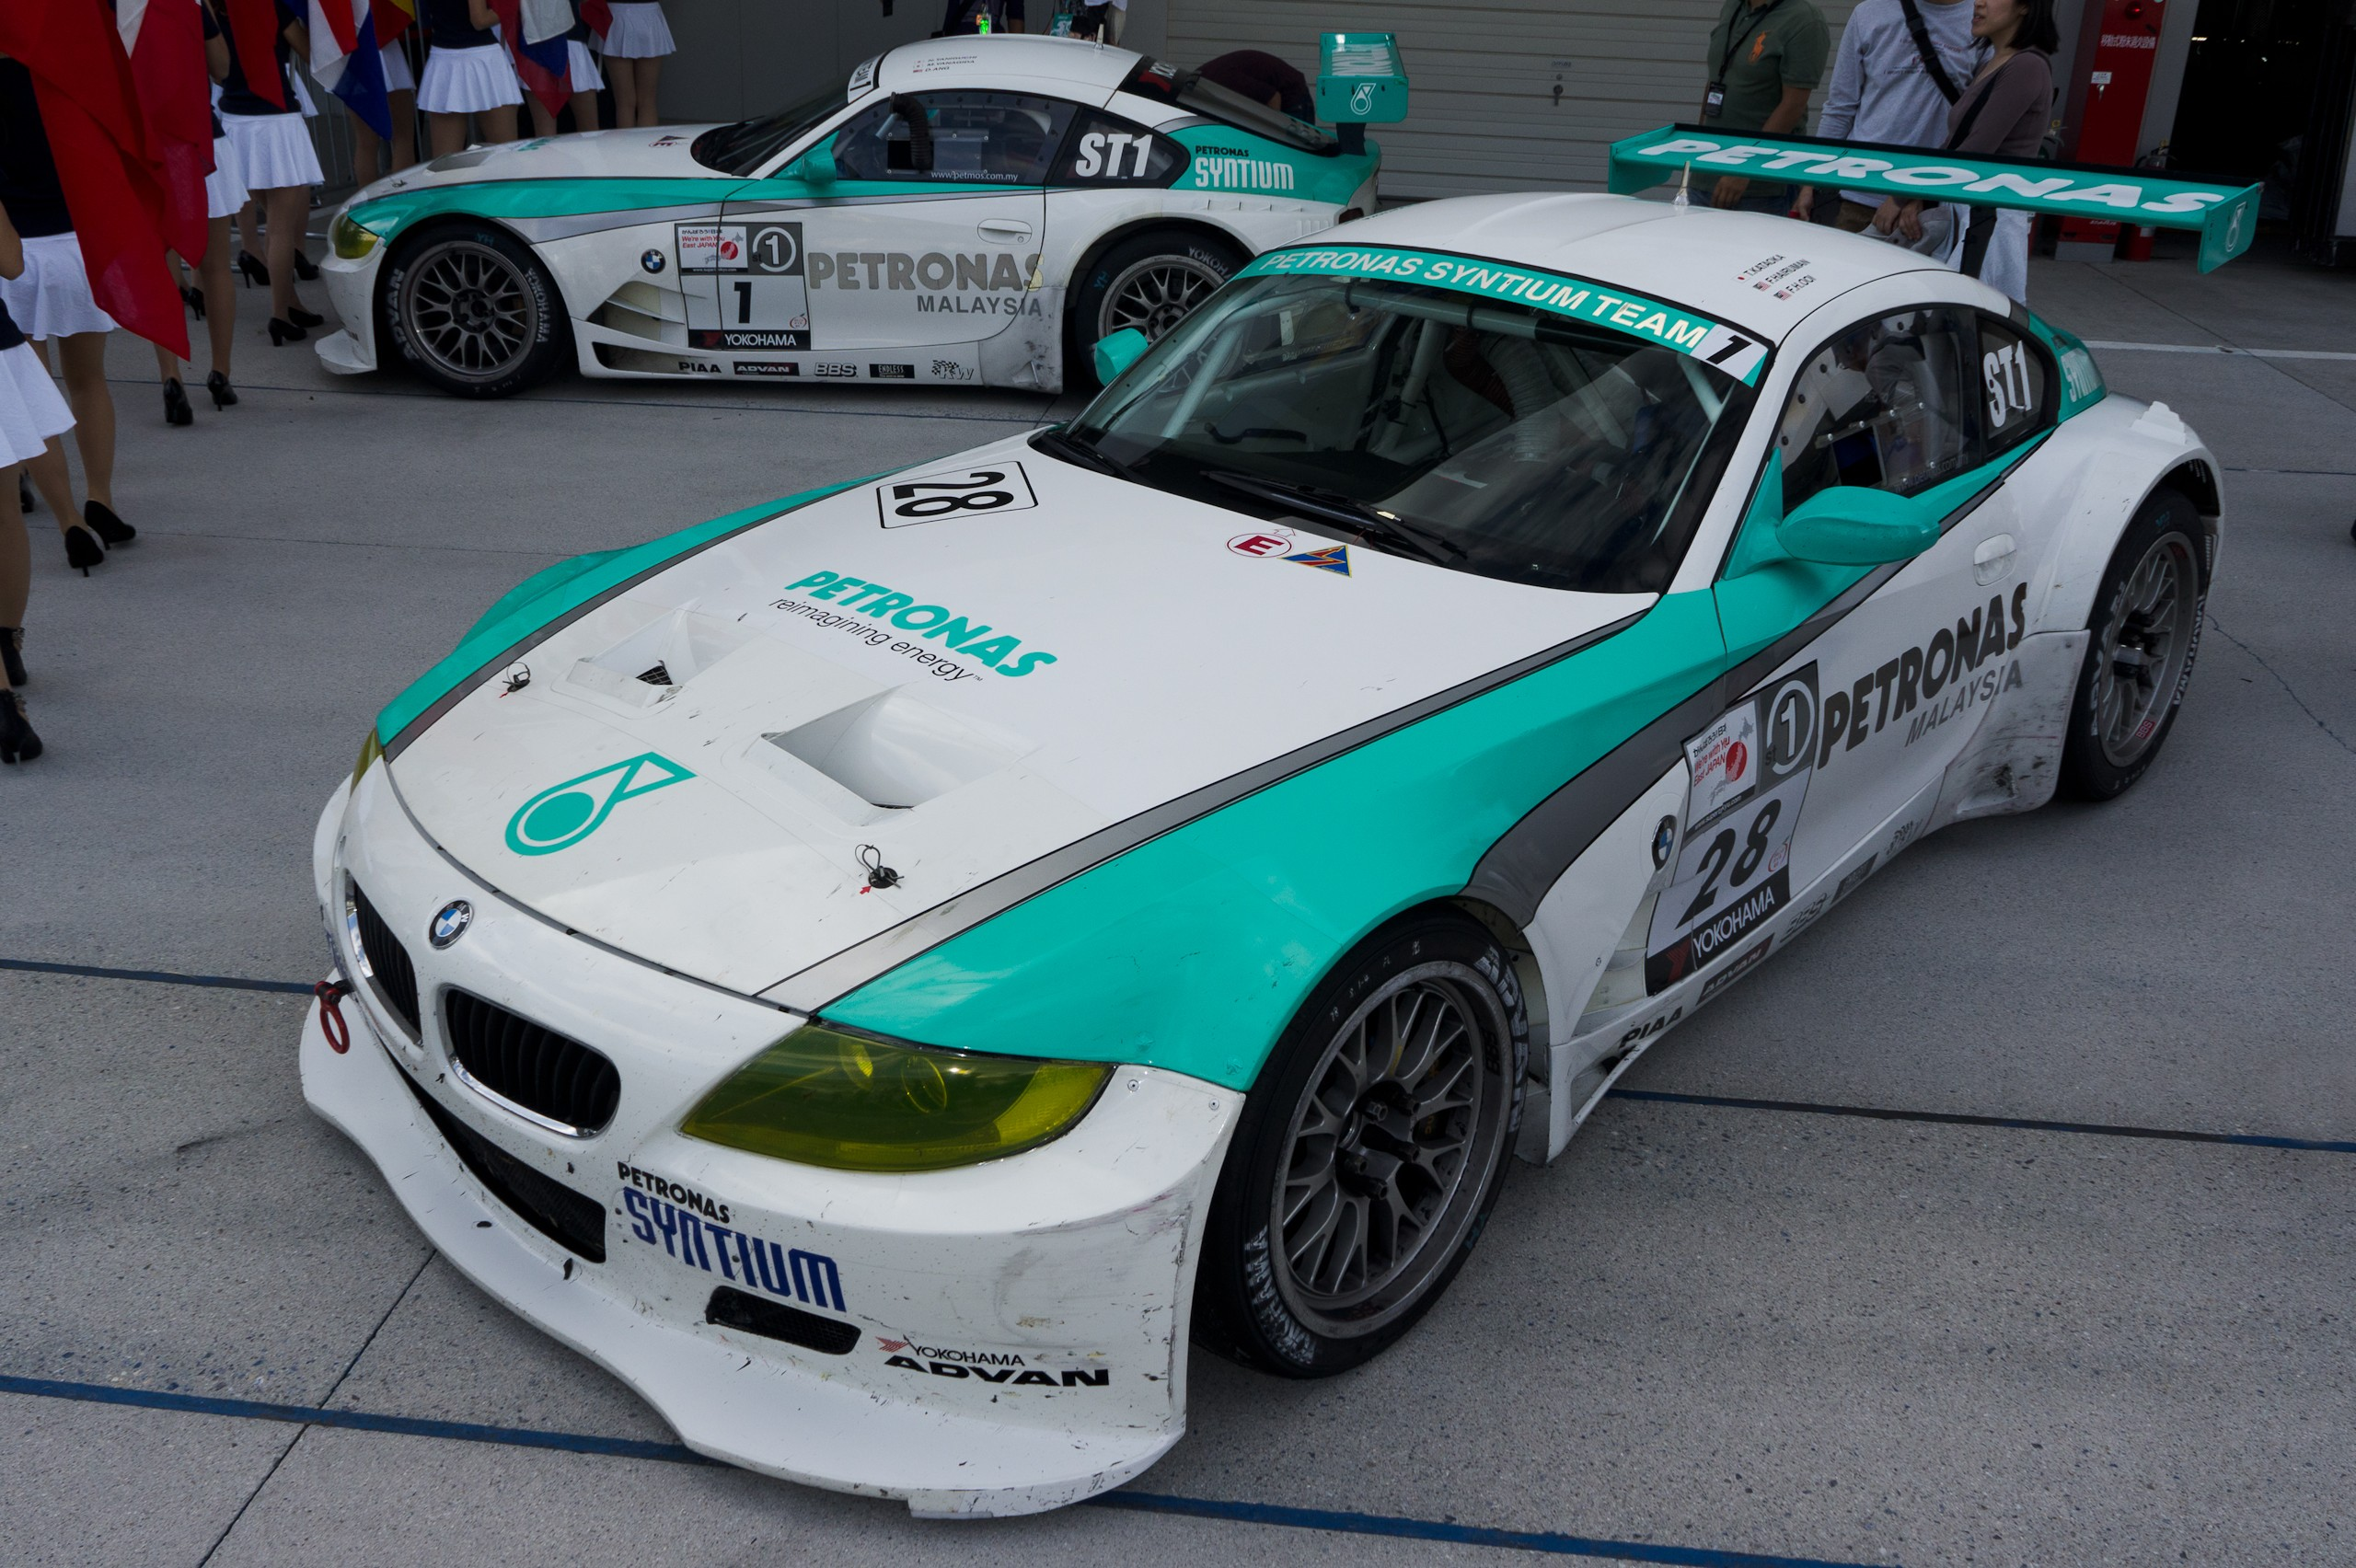 File Petronas Syntium Team Bmm Z4 M Coupe 2011 Super